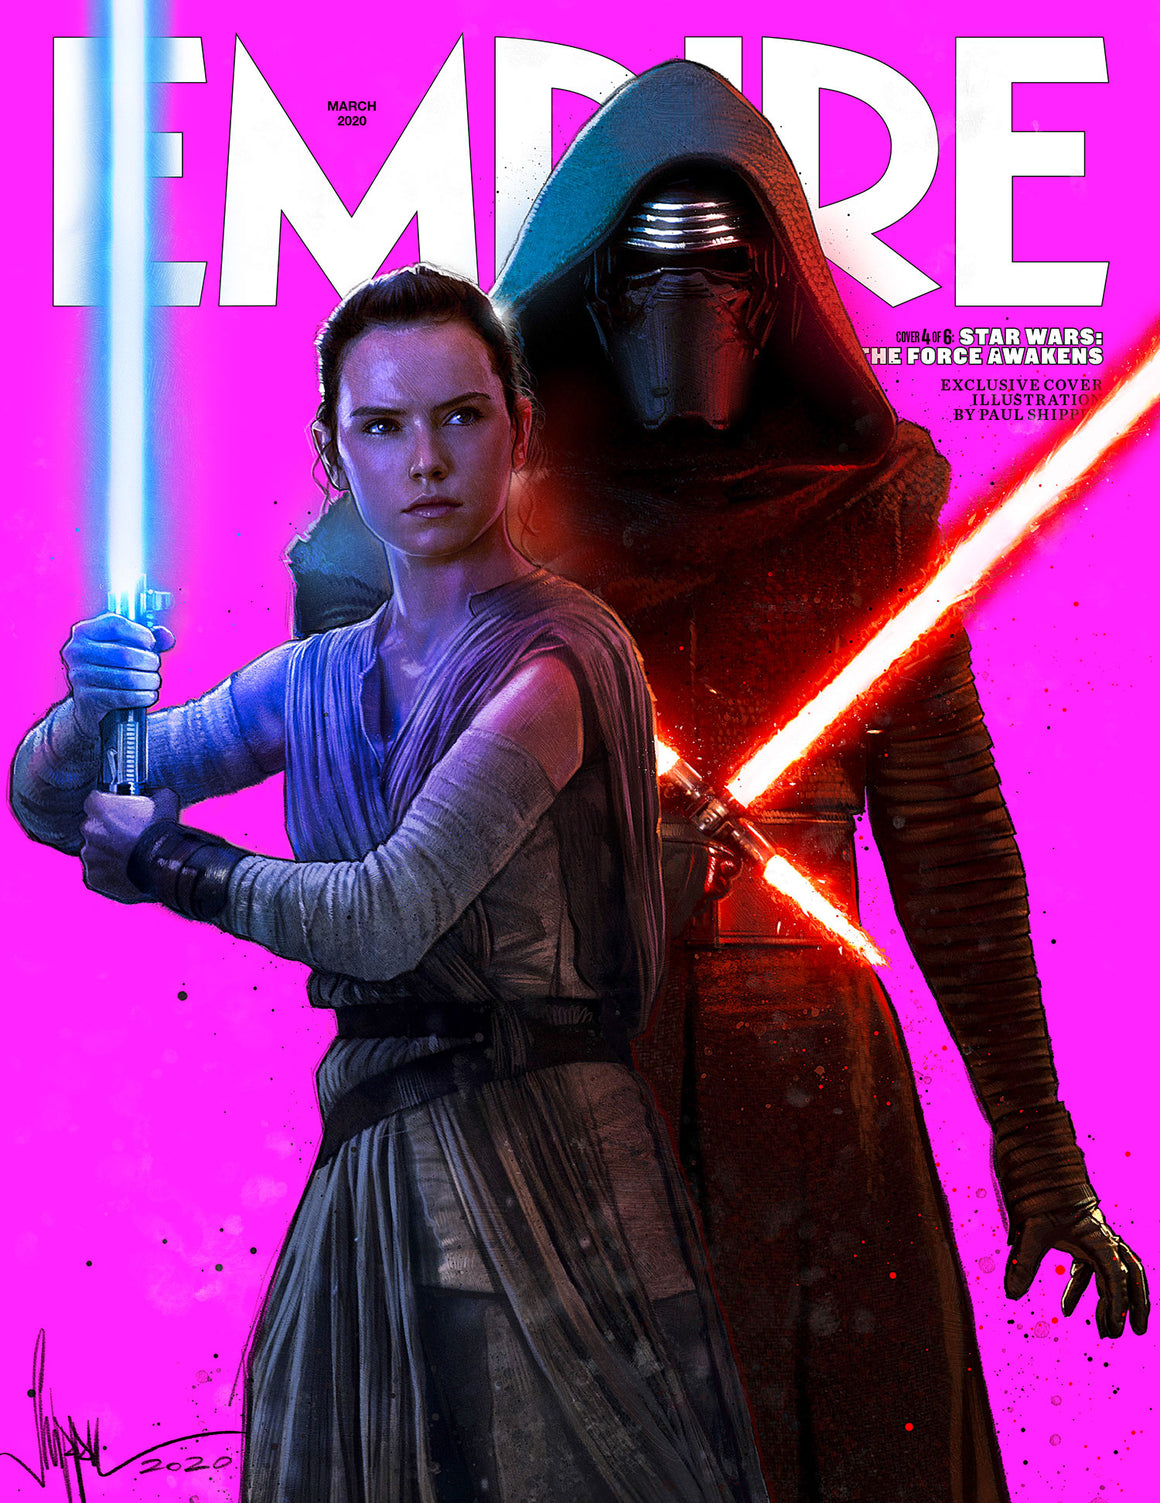 Empire March 2020: STAR WARS: Force Awakens - Cover #4 REY & KYLO REN (Adam Driver + Daisy Ridley)